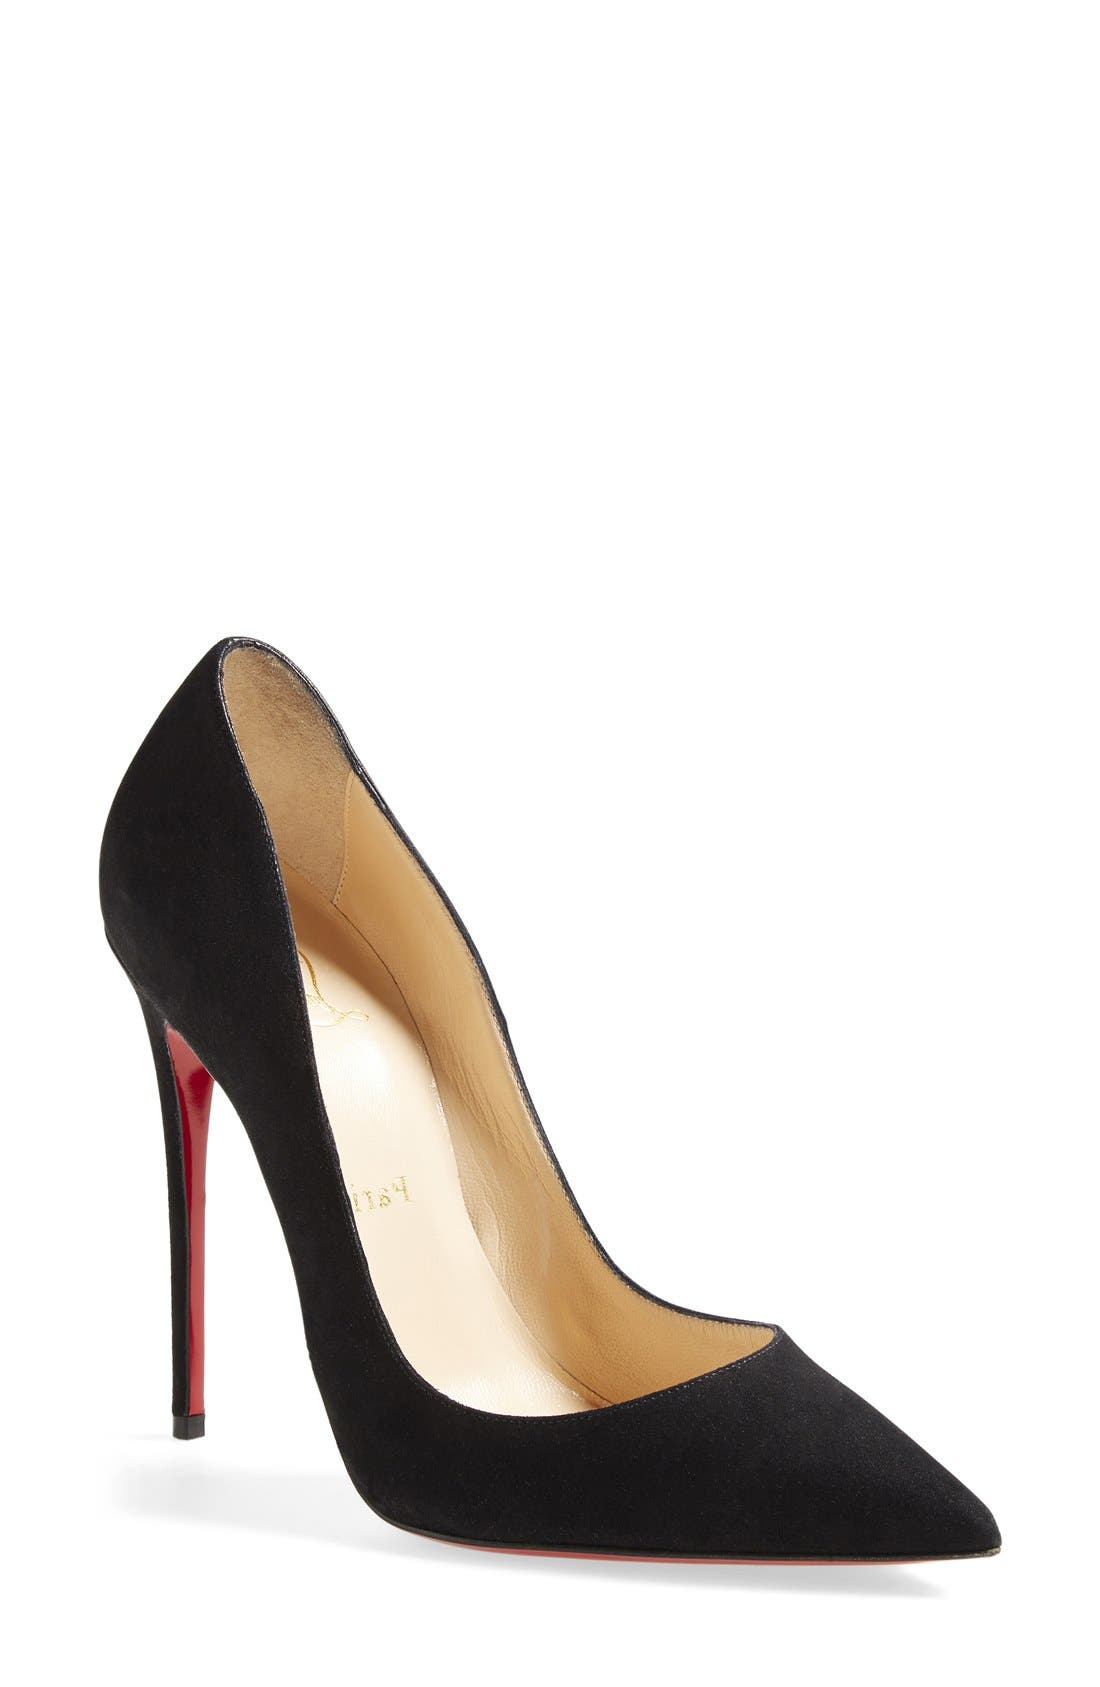 Main Image - Christian Louboutin 'So Kate' Pointy Toe Suede Pump